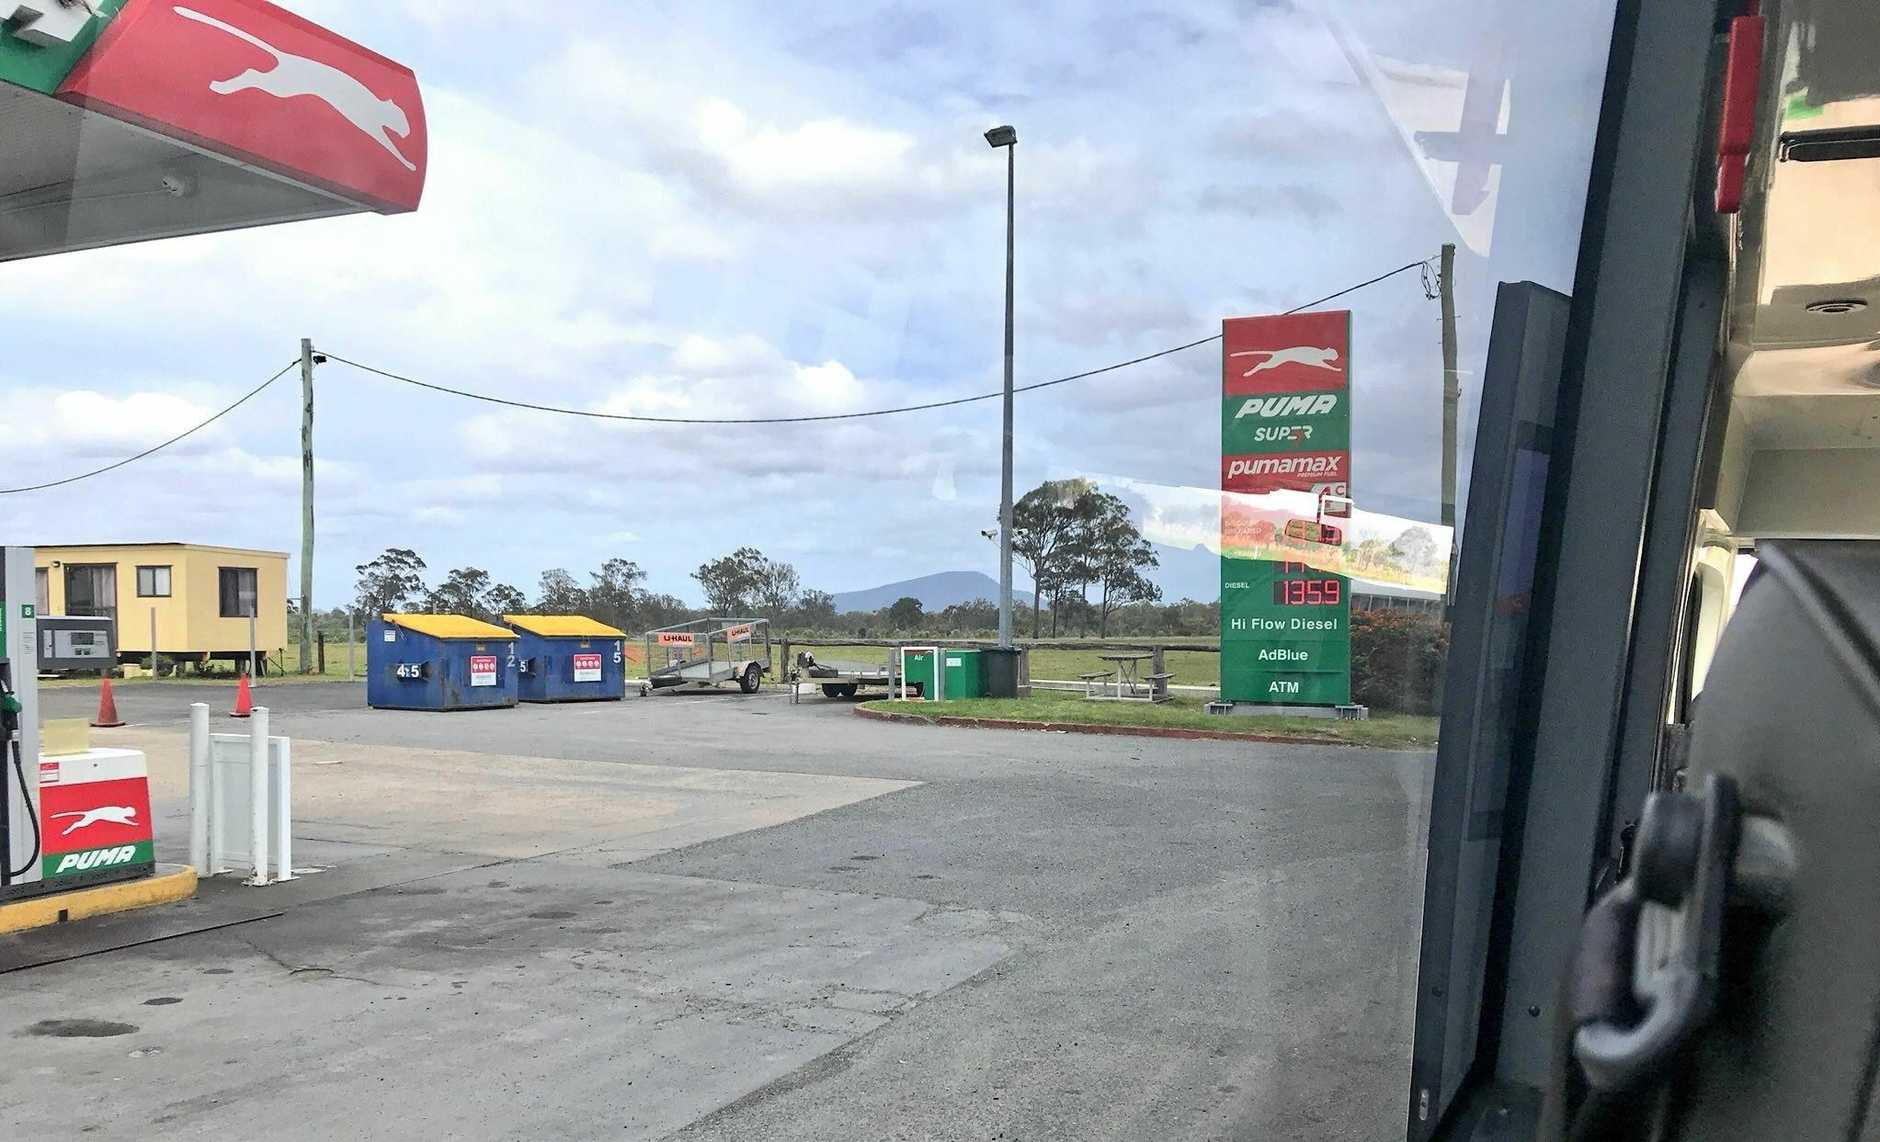 The bus at the fuel station.